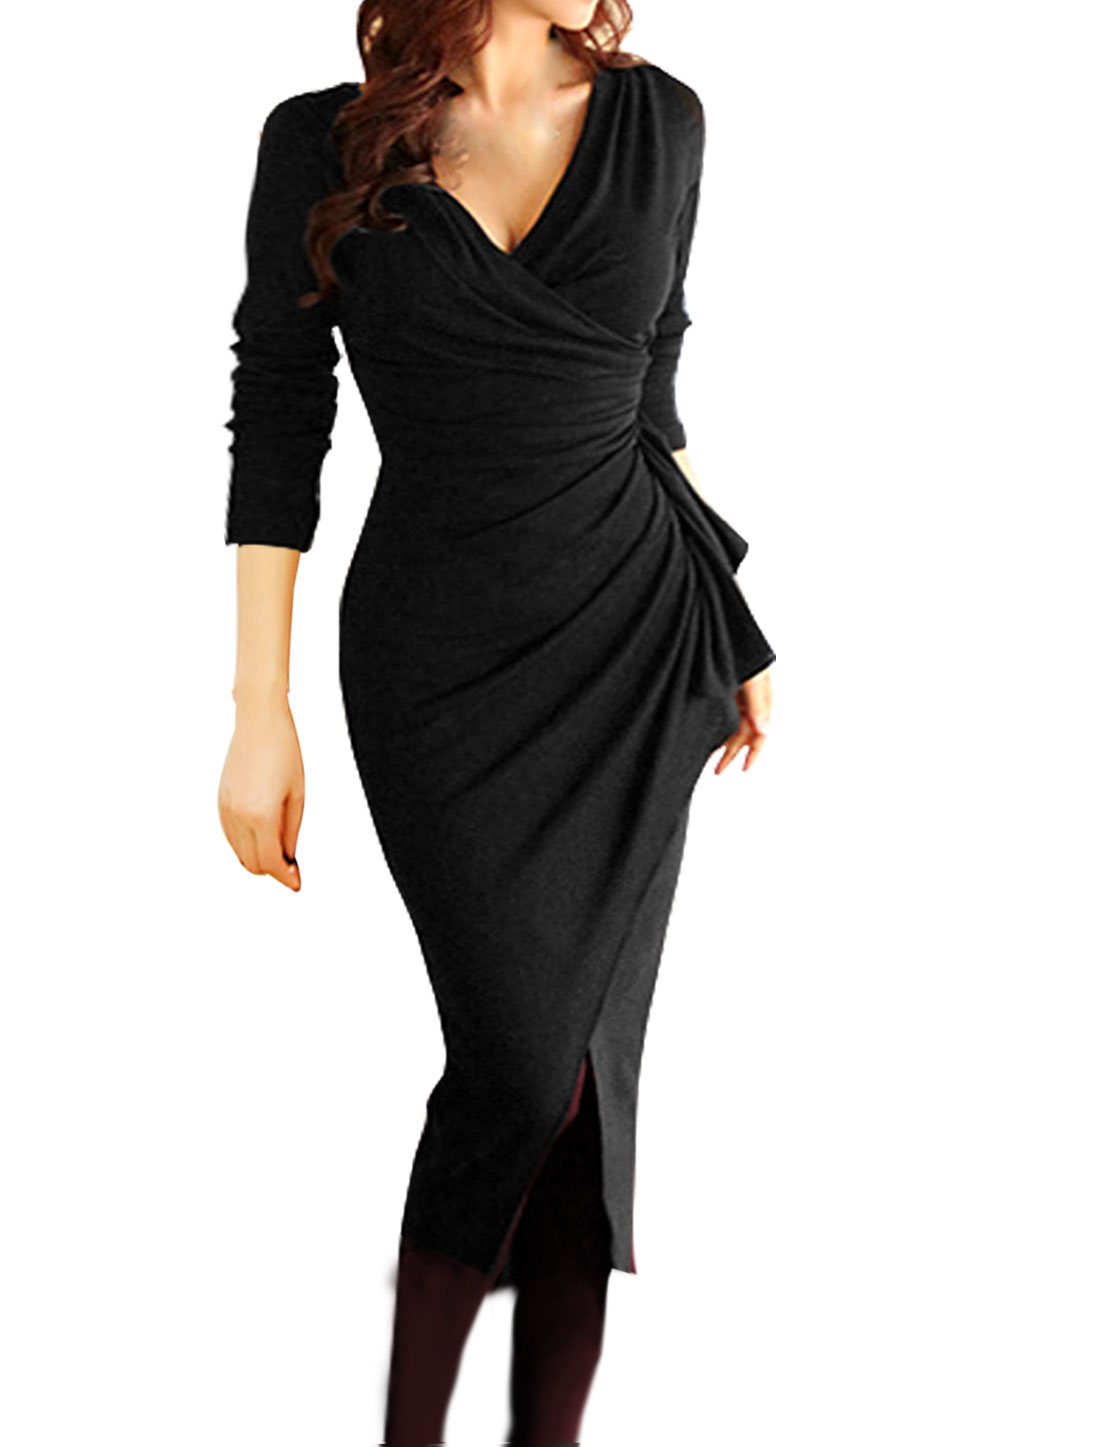 Women Wrap Design Ruffled Split Front Bodycon Midi Dress Black S